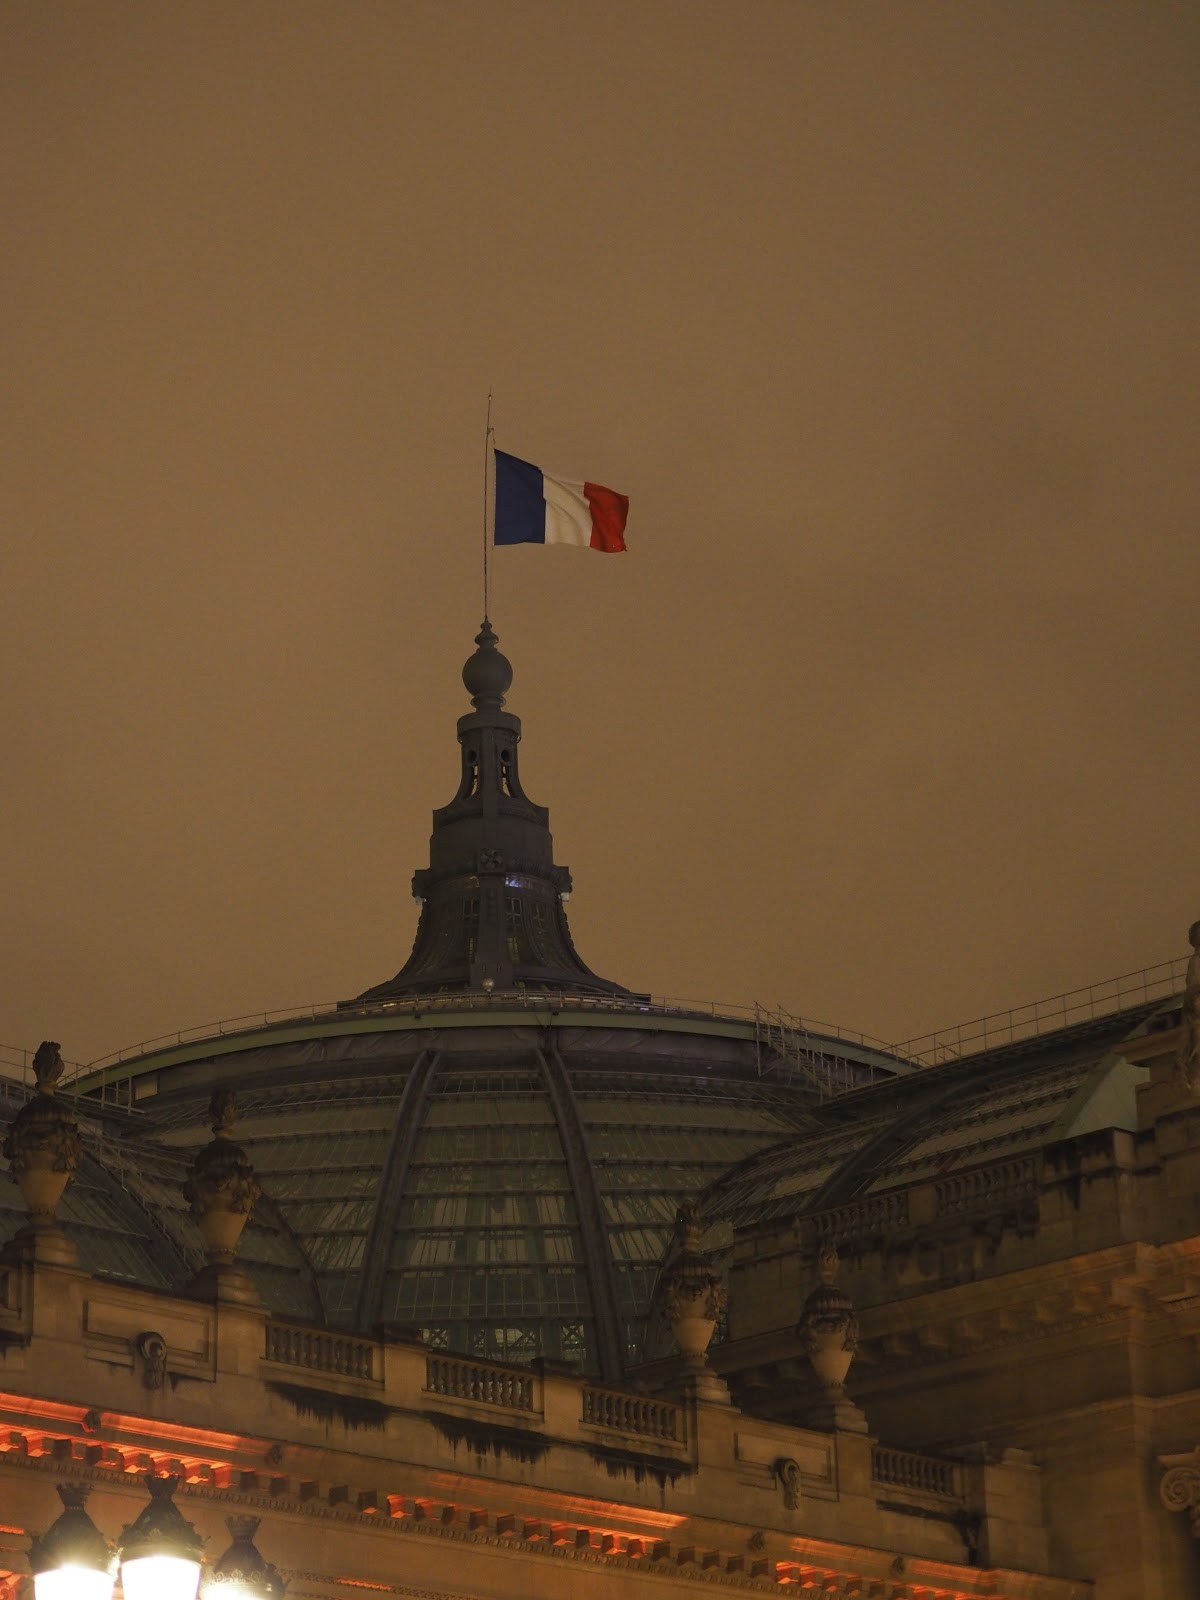 French flag at night time